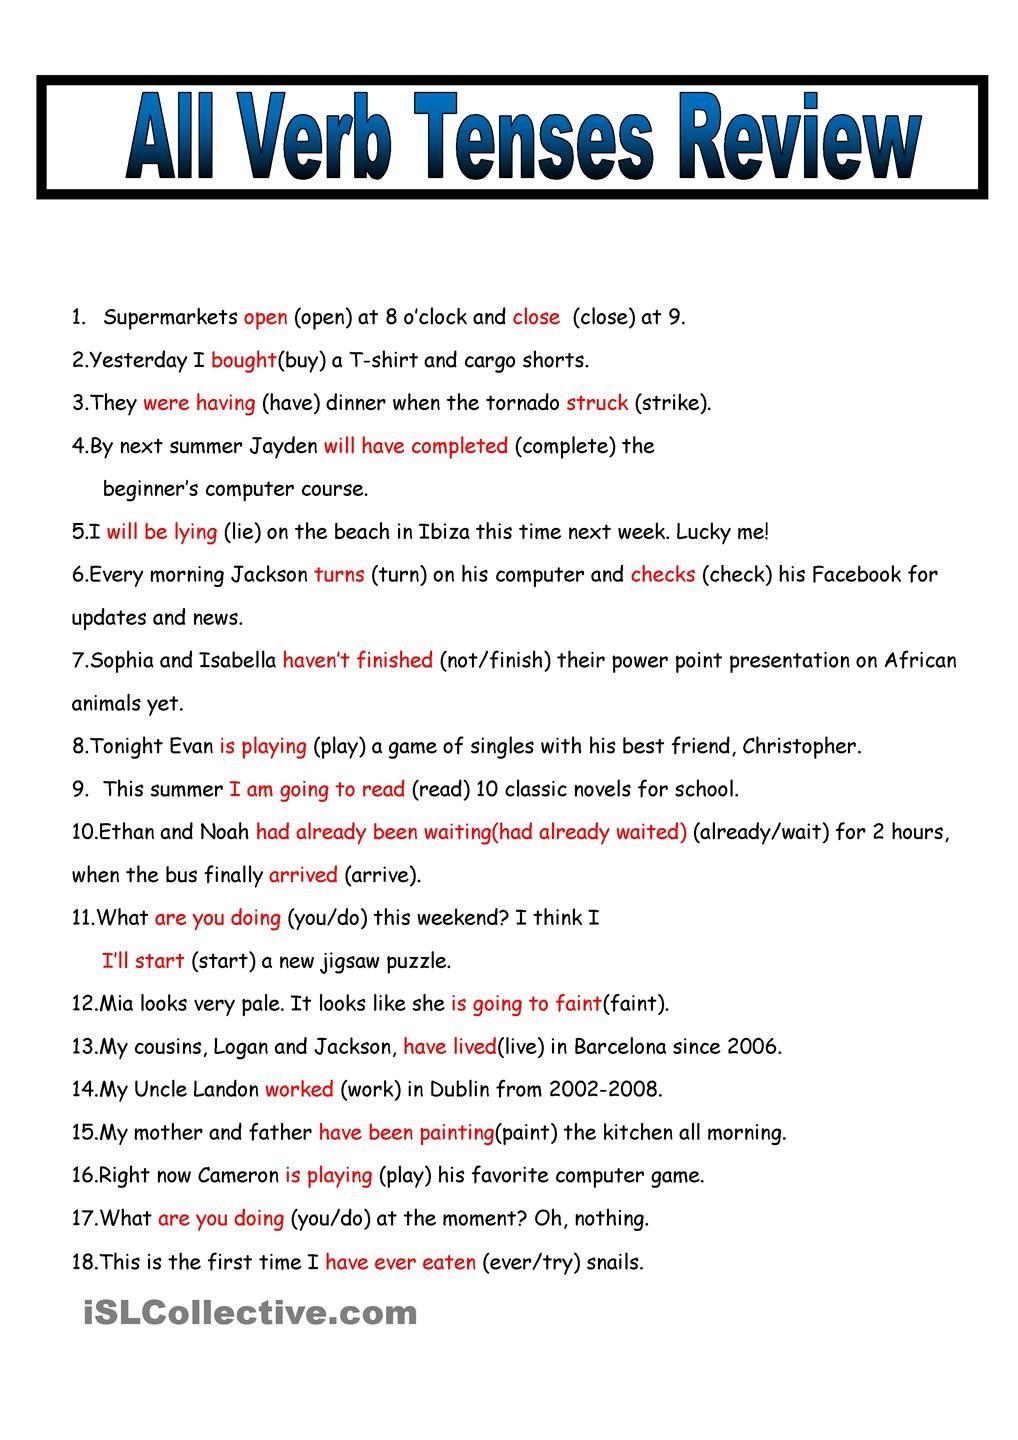 small resolution of https://cute766.info/mixed-tenses-revision-answer-key-esl-worksheet-by-aldanavenadotuerto/